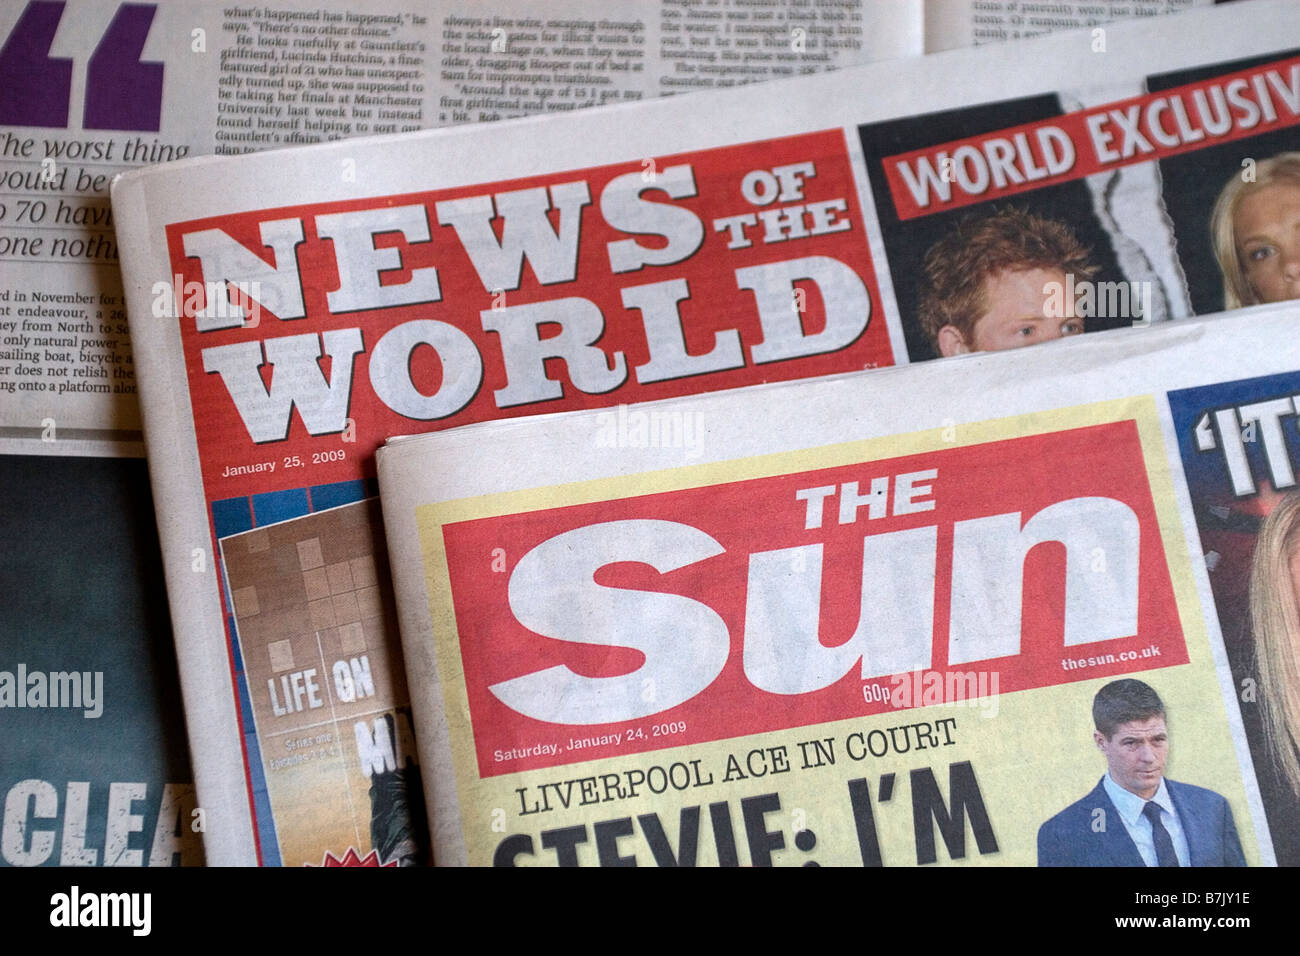 News Of The World and The Sun - Stock Image